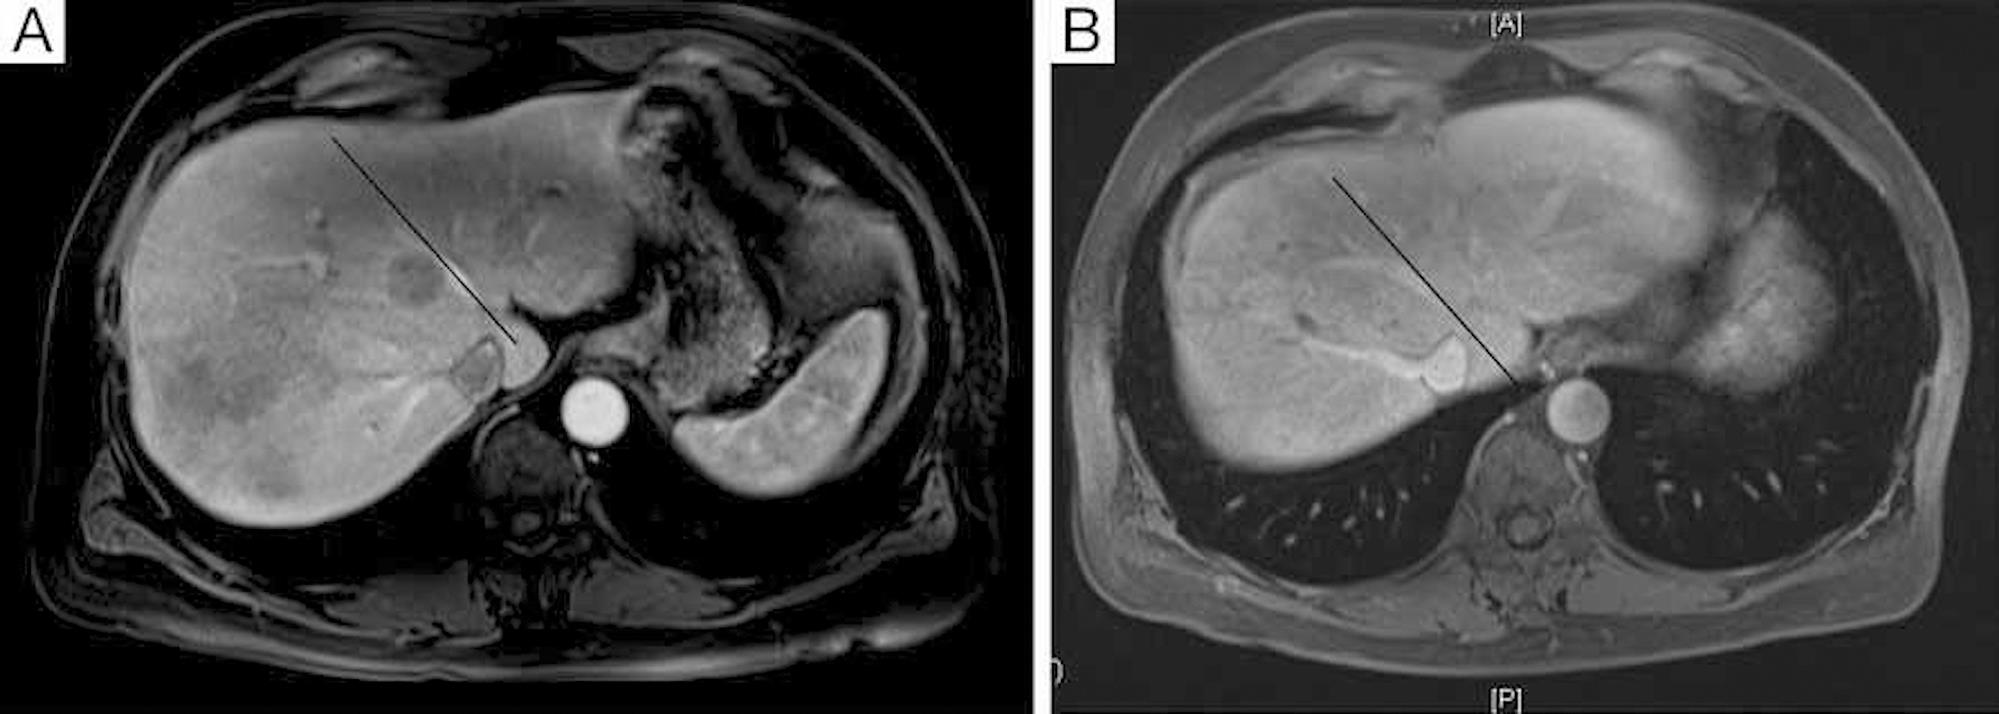 (A) Pre-portal vein embolization of right lobe of liver to induce hypertrophy of left lobe of liver. (B) Six weeks post-portal vein embolization of right lobe of liver to induce hypertrophy of left lobe of liver.